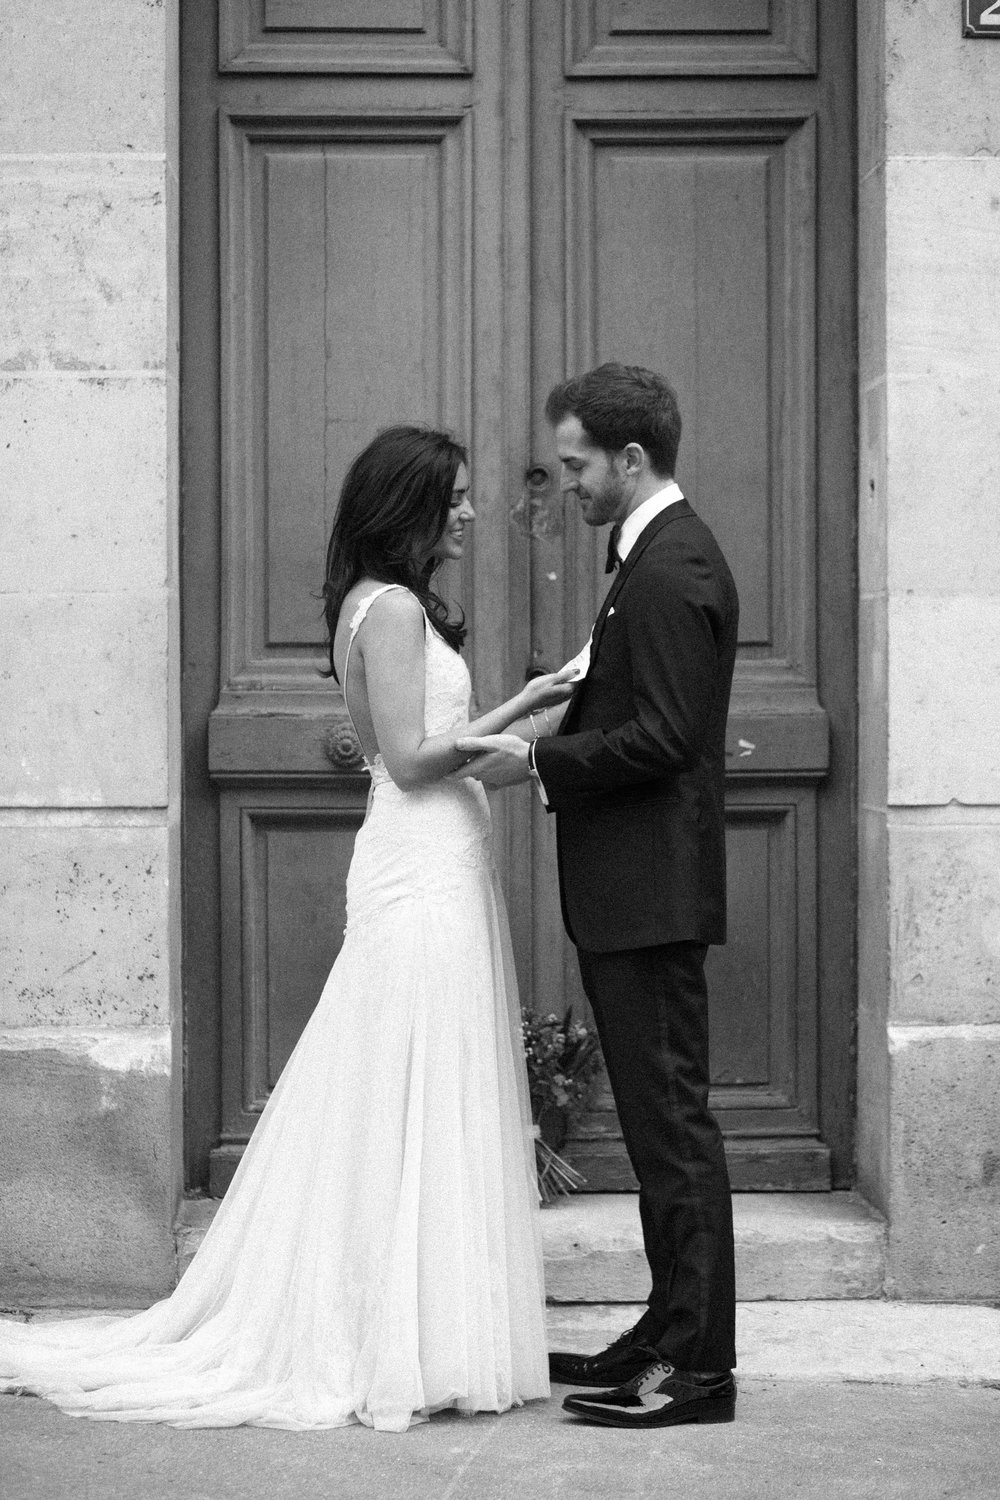 paris wedding photographer craig george hannah and mitch elopment-206.jpg